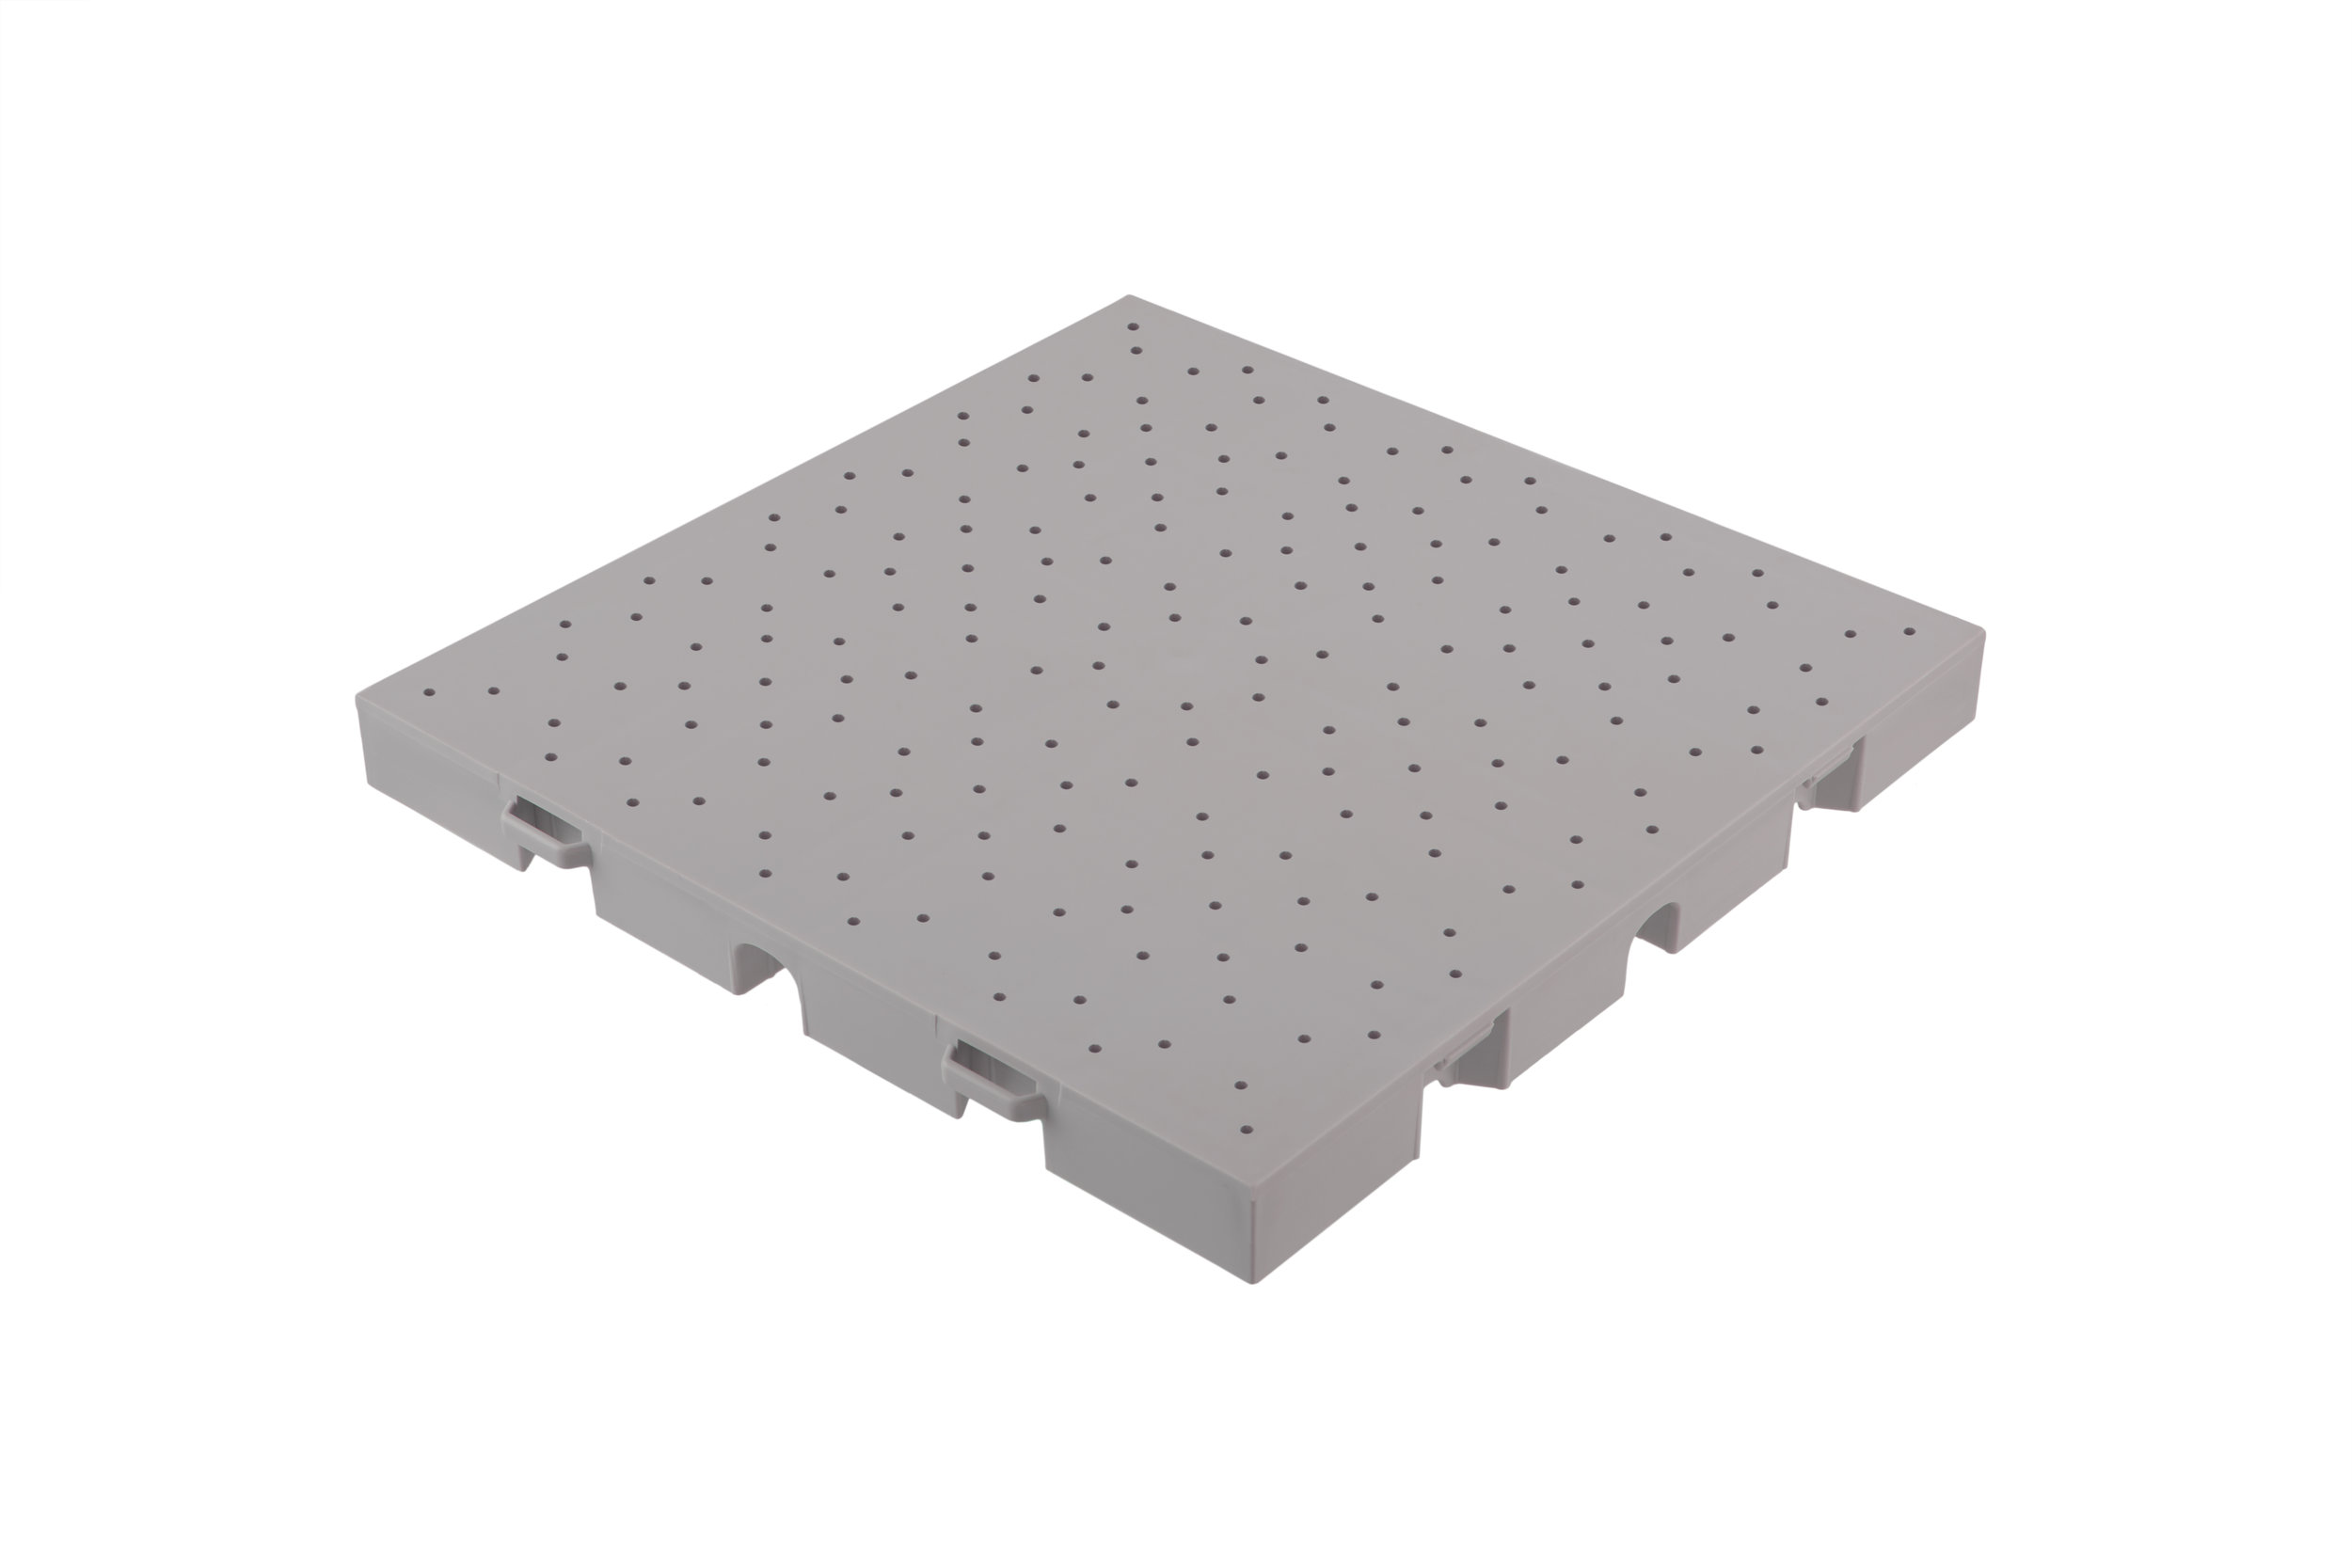 Need flooring for your tent or structure? - We offer a complete line of modular tent and access flooring systems for disaster relief and military applications.